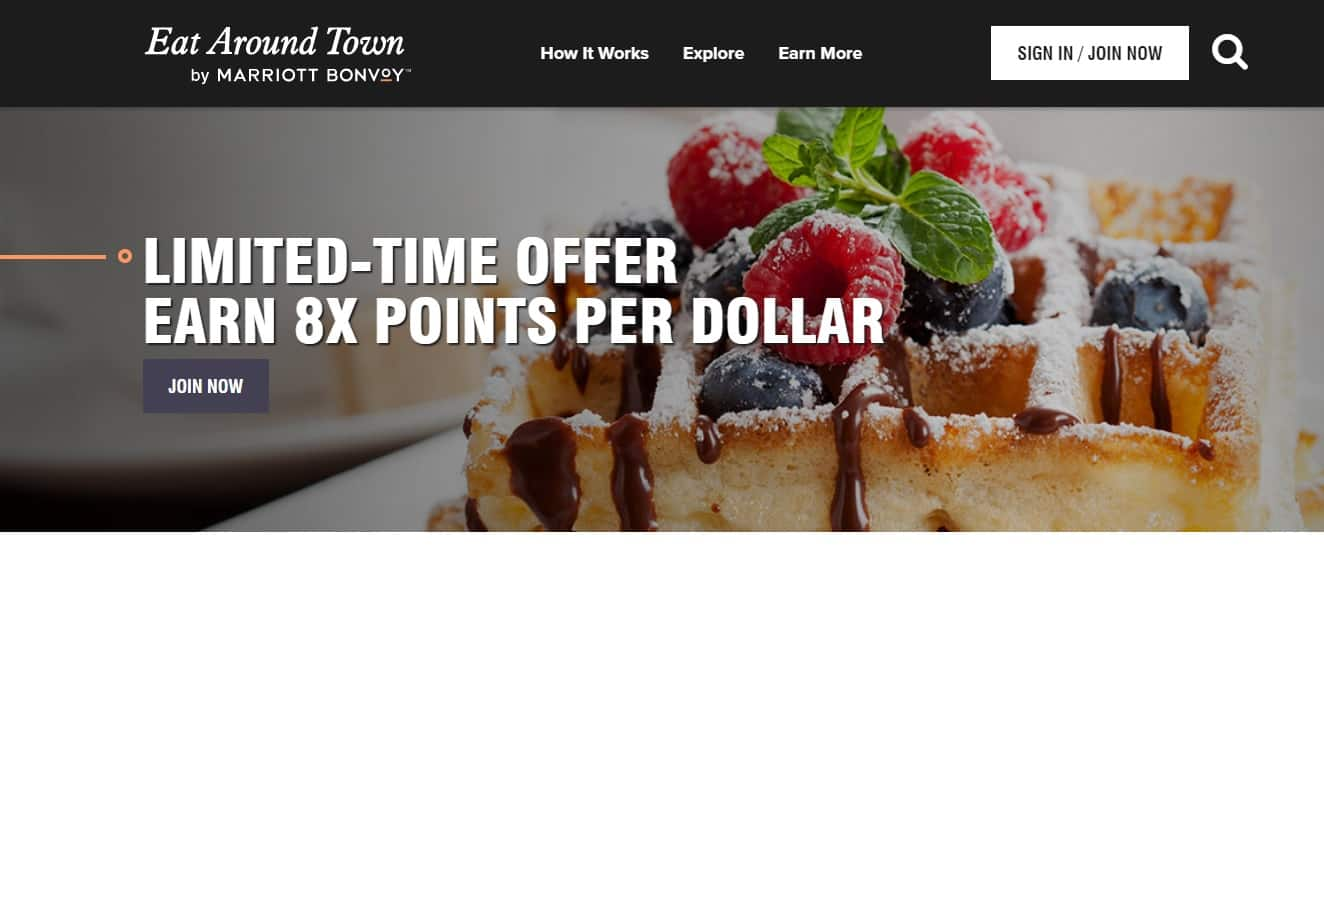 Marriott Bonvoy New 'Eat Around Town' Earn Points for Dining - 8x Points Per Dollars for Limited Time